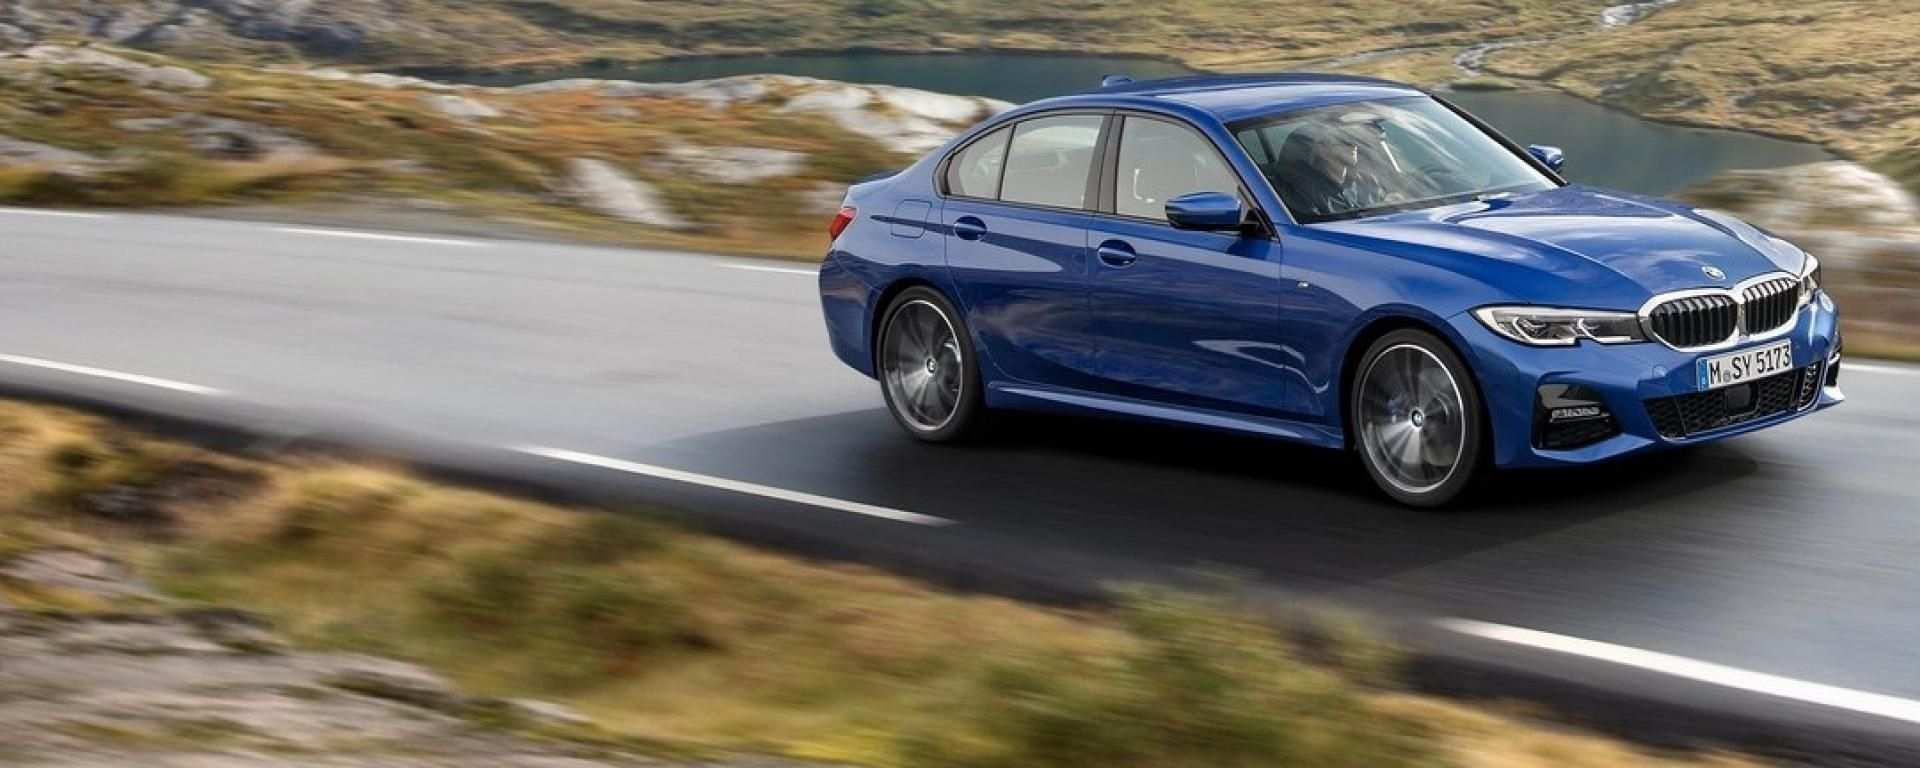 66 New Bmw Serie 3 2019 Quando Esce Release Specs And Review Reviews with Bmw Serie 3 2019 Quando Esce Release Specs And Review